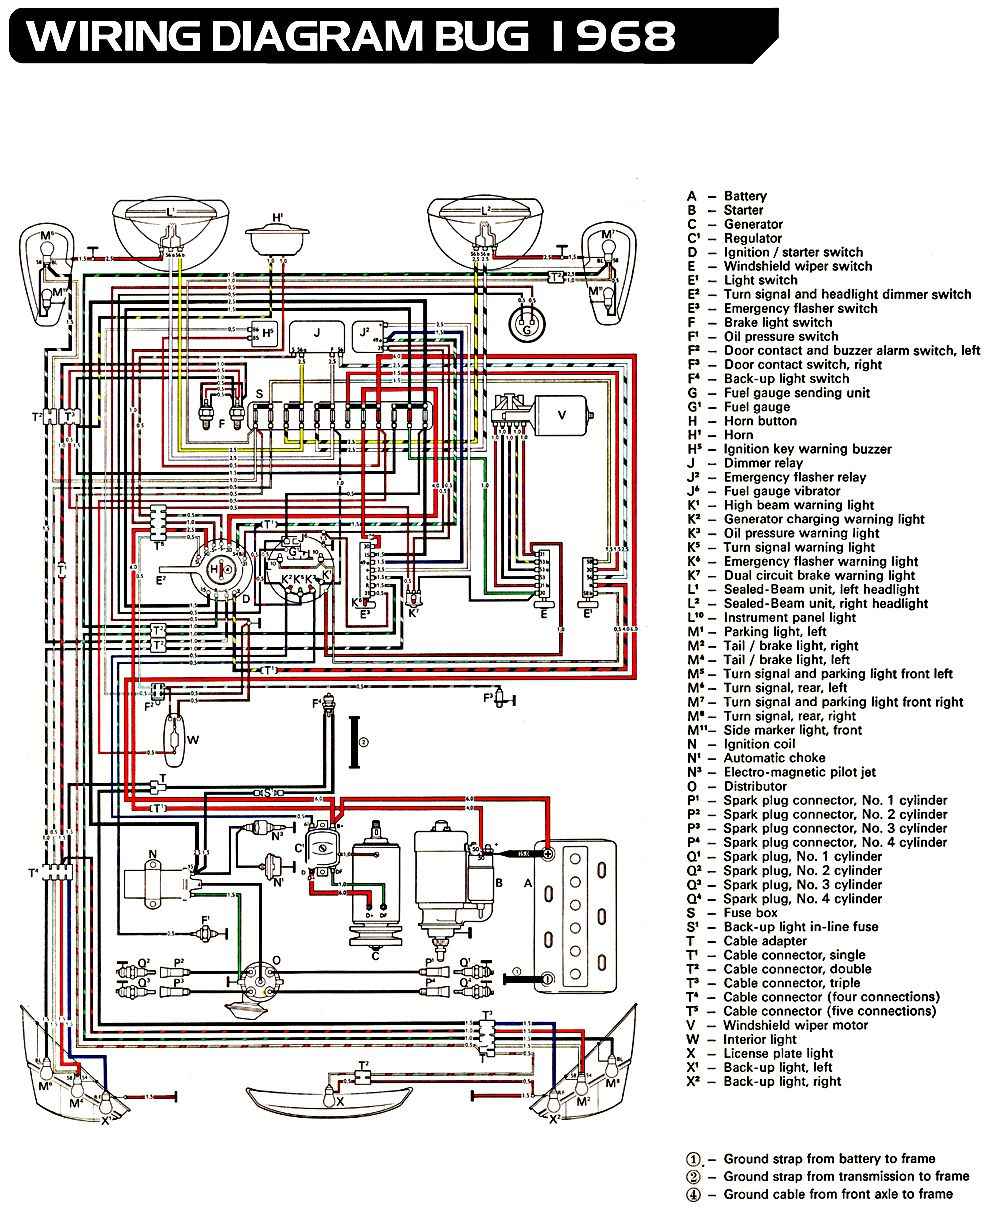 3a1908112d3826270ed5e3be362292bf vw bug ignition wiring diagram 73 vw wiring diagram free vw beetle wiring harness routing at mifinder.co